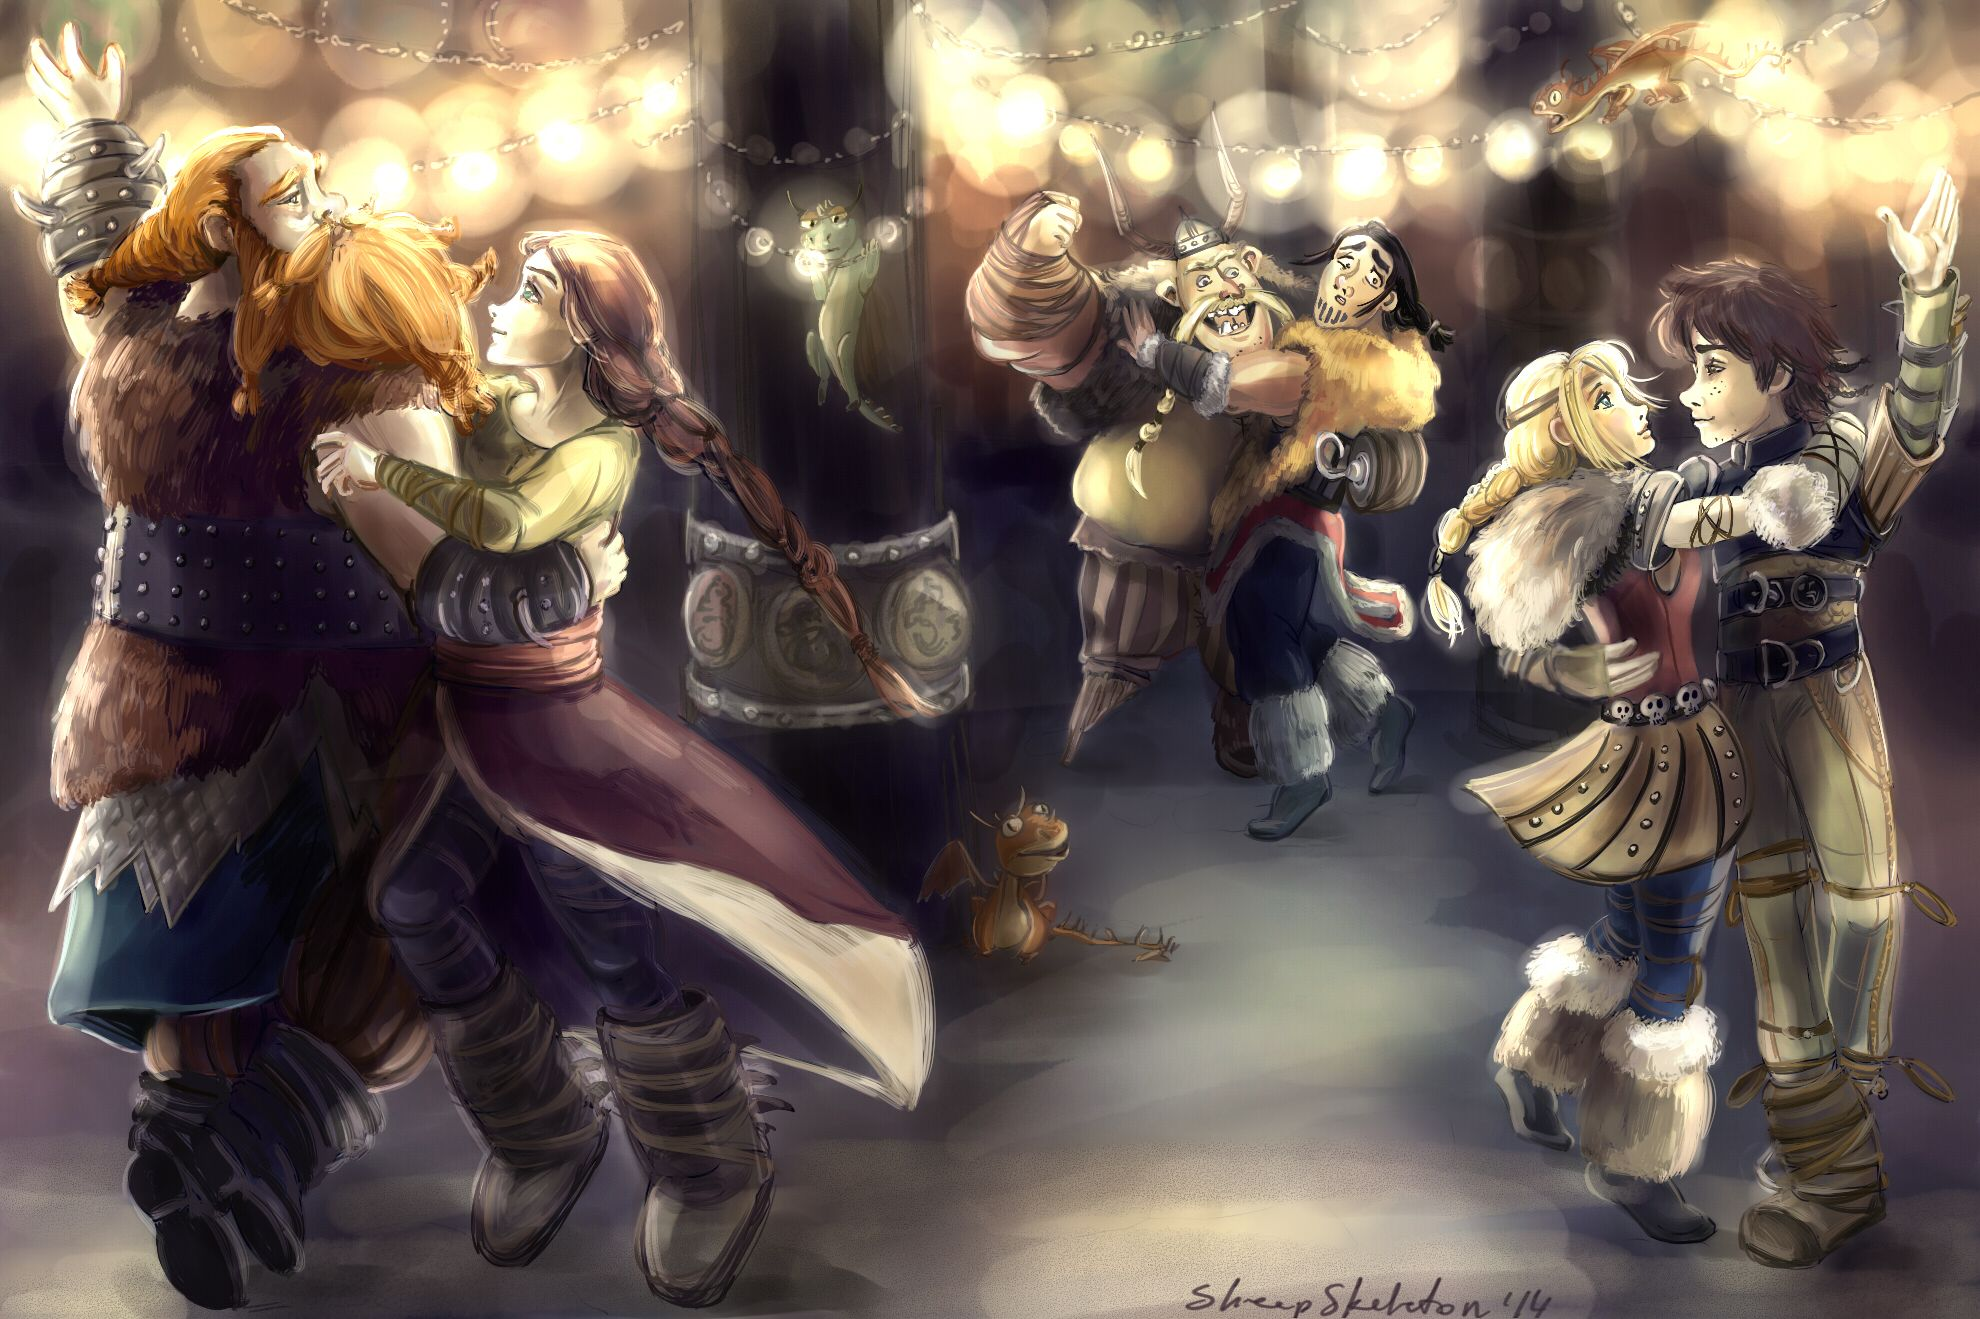 For the Dancing and Dreaming by sheepSkeleton.deviantart.com on @deviantART<<< Stoick and Valka :'( , Hiccup and Astrid, and Gobber somehow pulled Eret in the dance as well